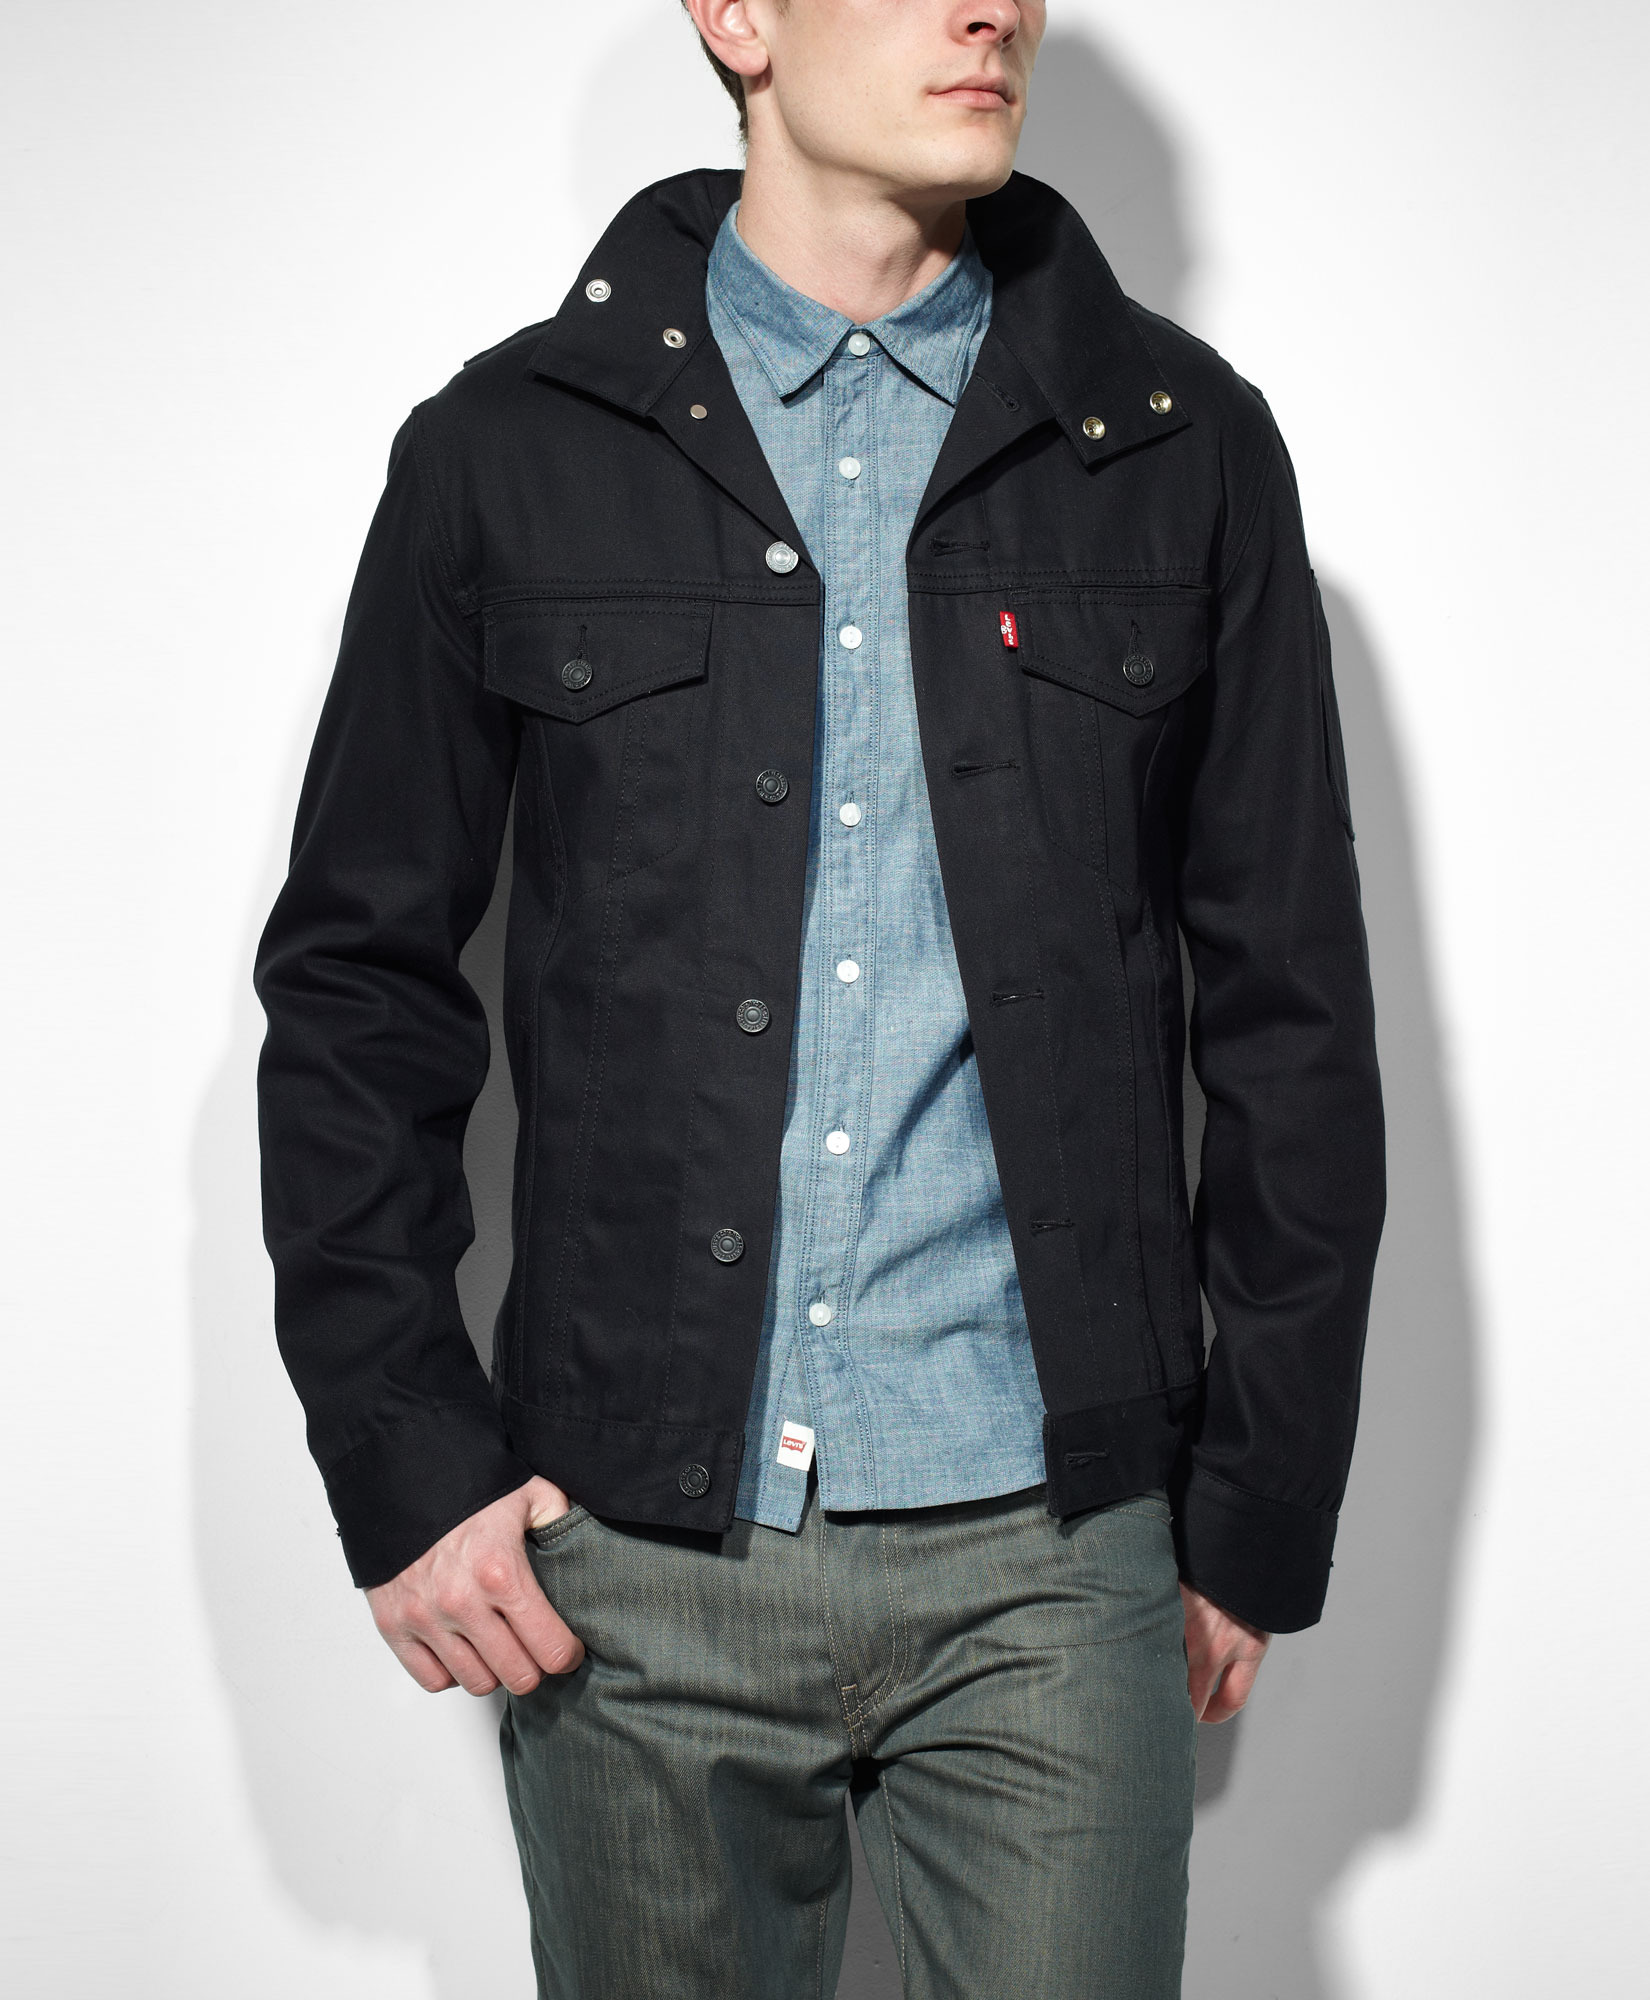 Waxed Trucker Jacket | Carhartt Trucker Jacket | Mens Waxed Cotton Jacket